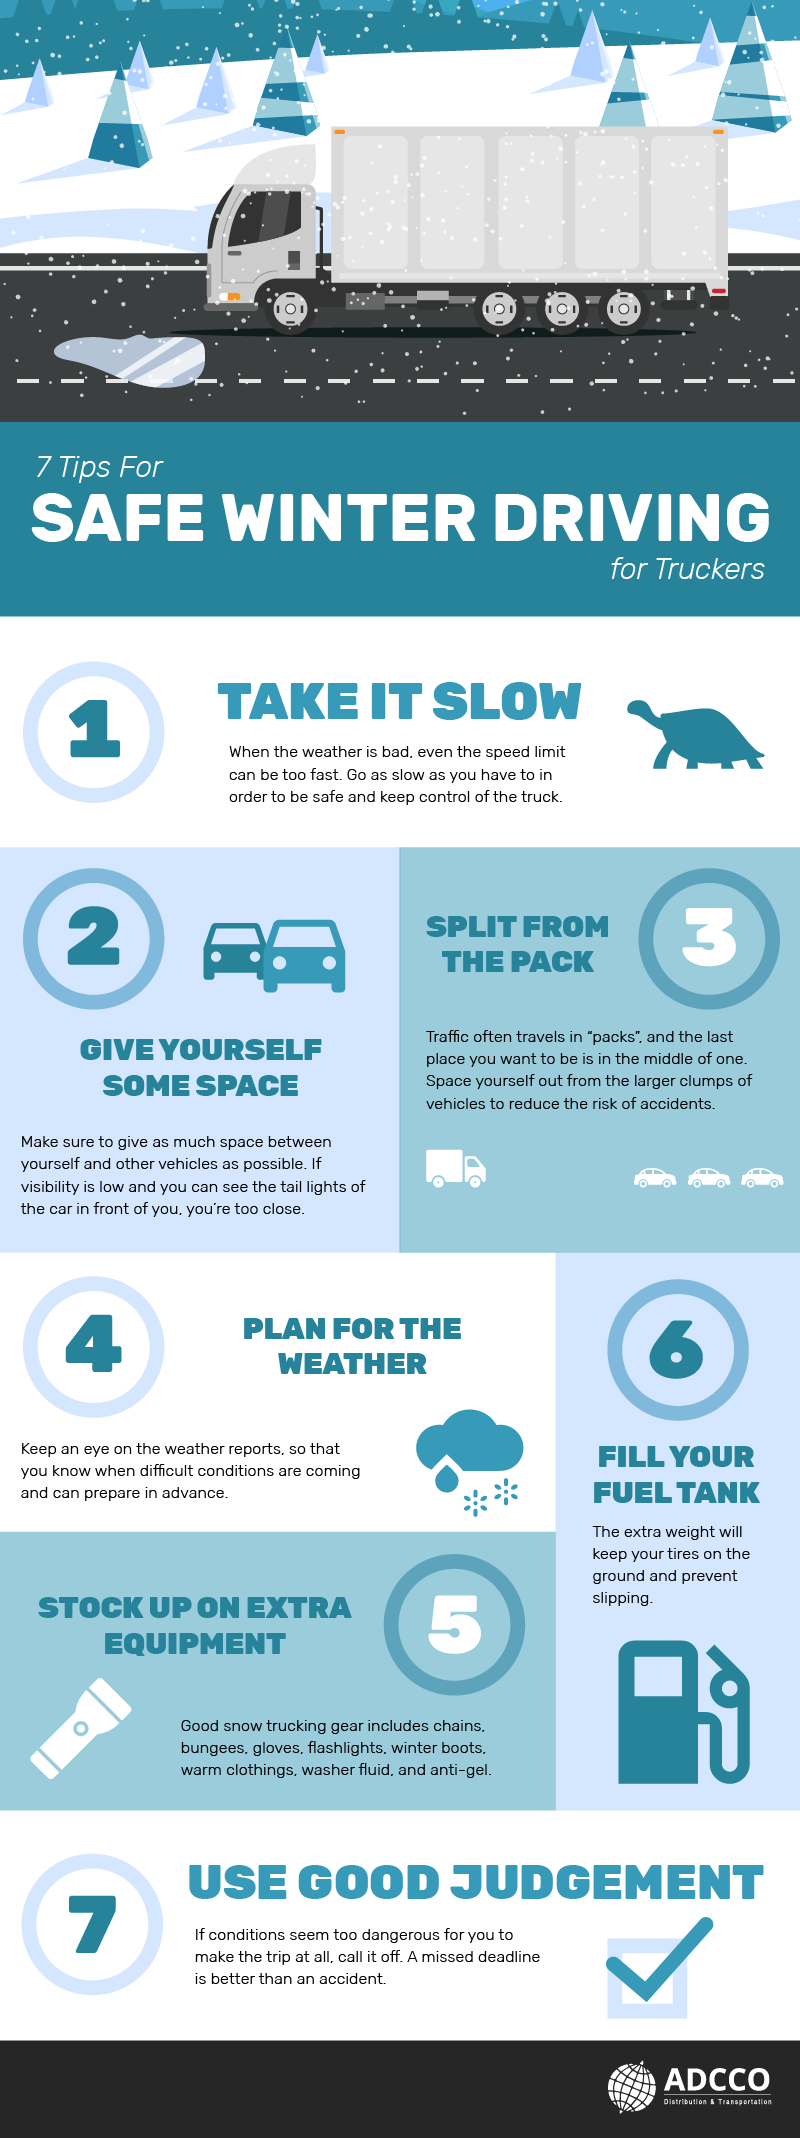 7 Tips For Safe Winter Driving #infographic #Winter Driving #Transportation #infographics #Driving Safety